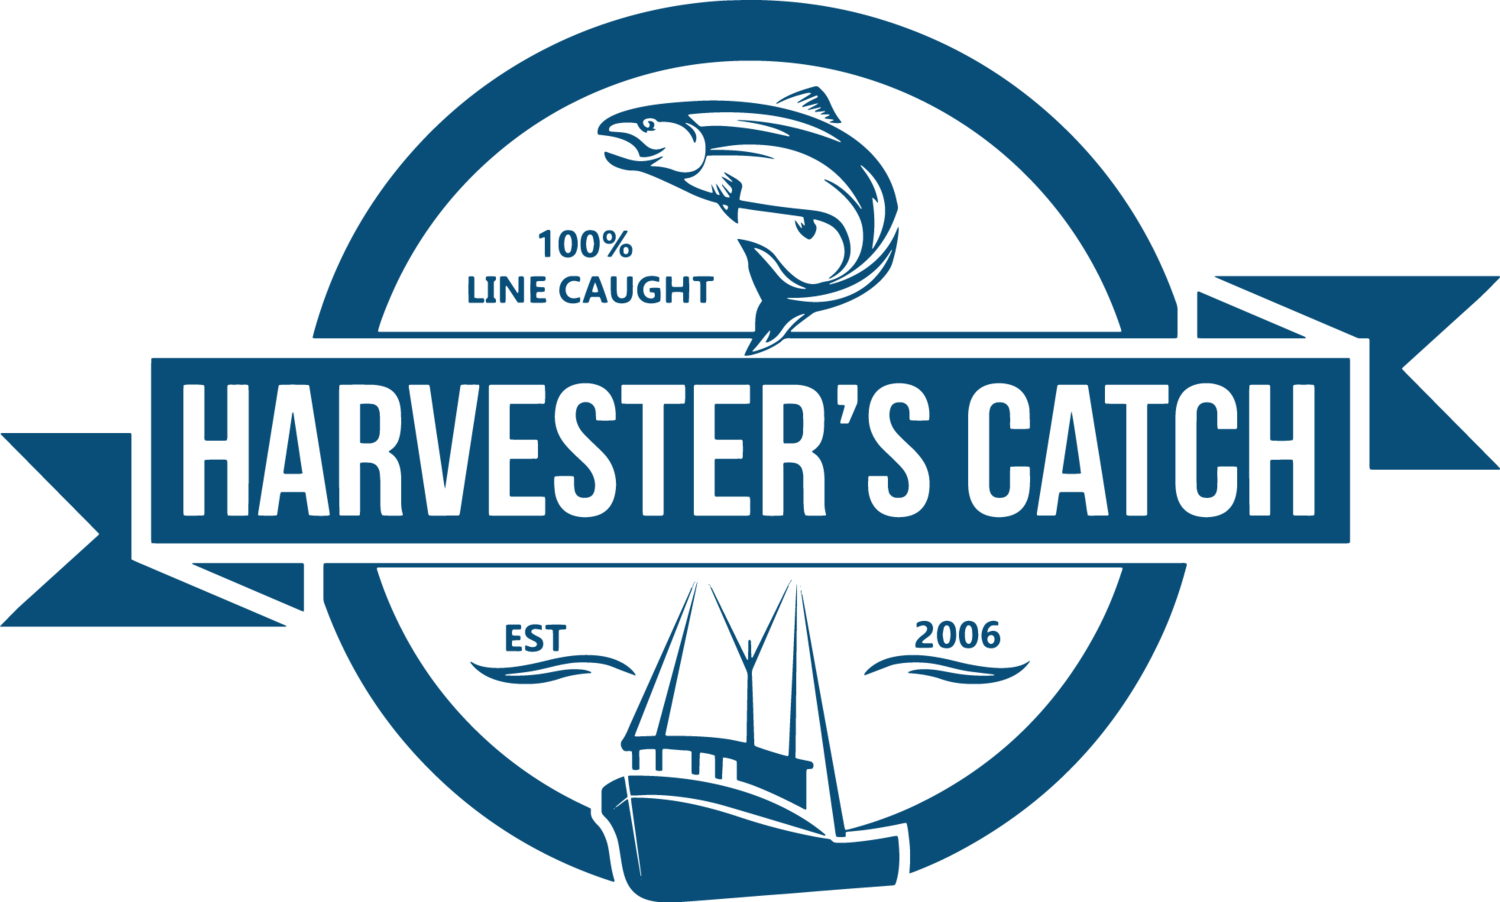 Harvester's Catch